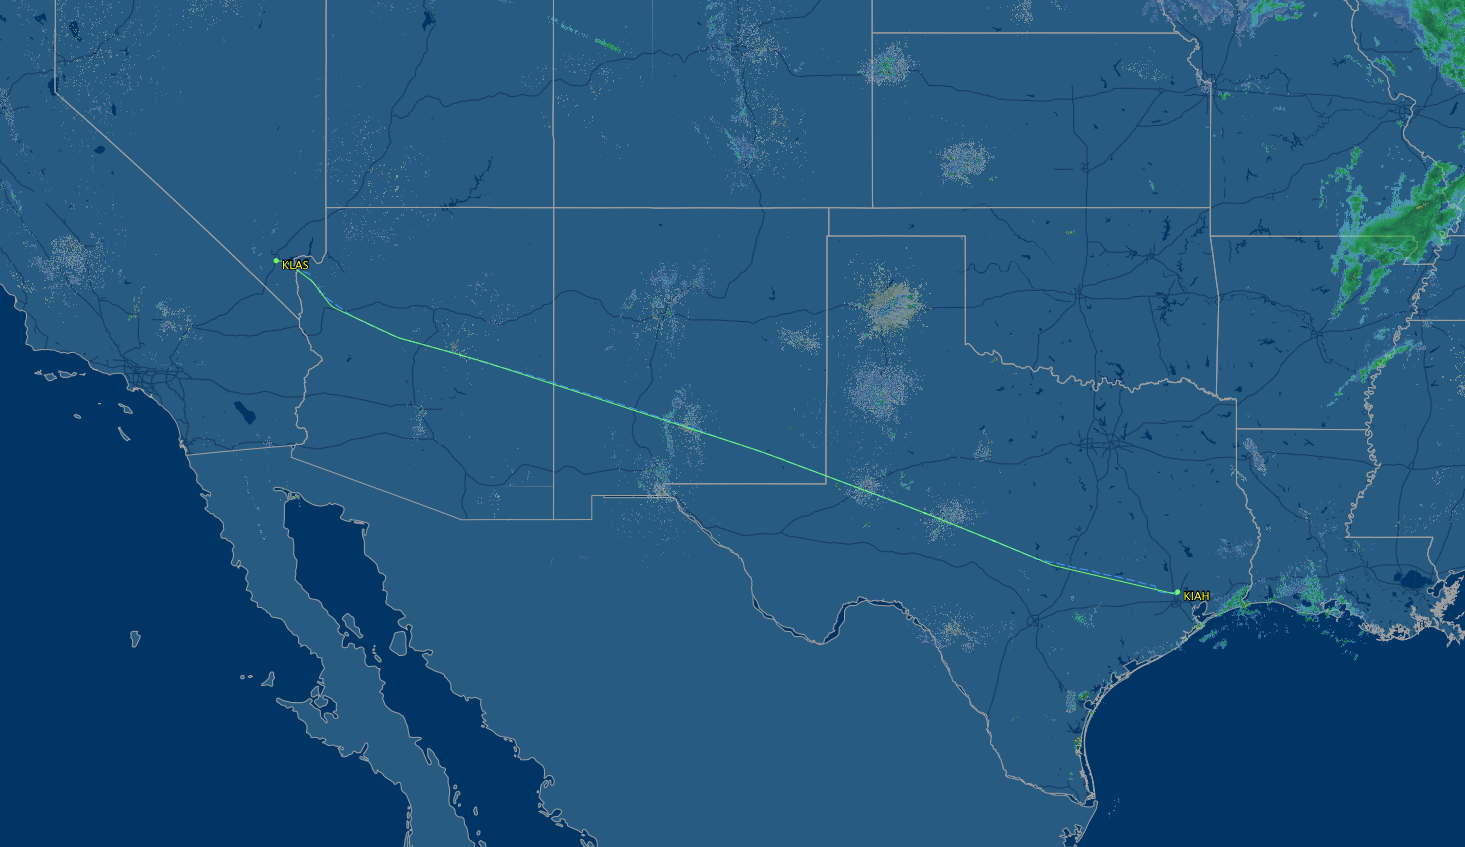 route map for Houston to Las Vegas